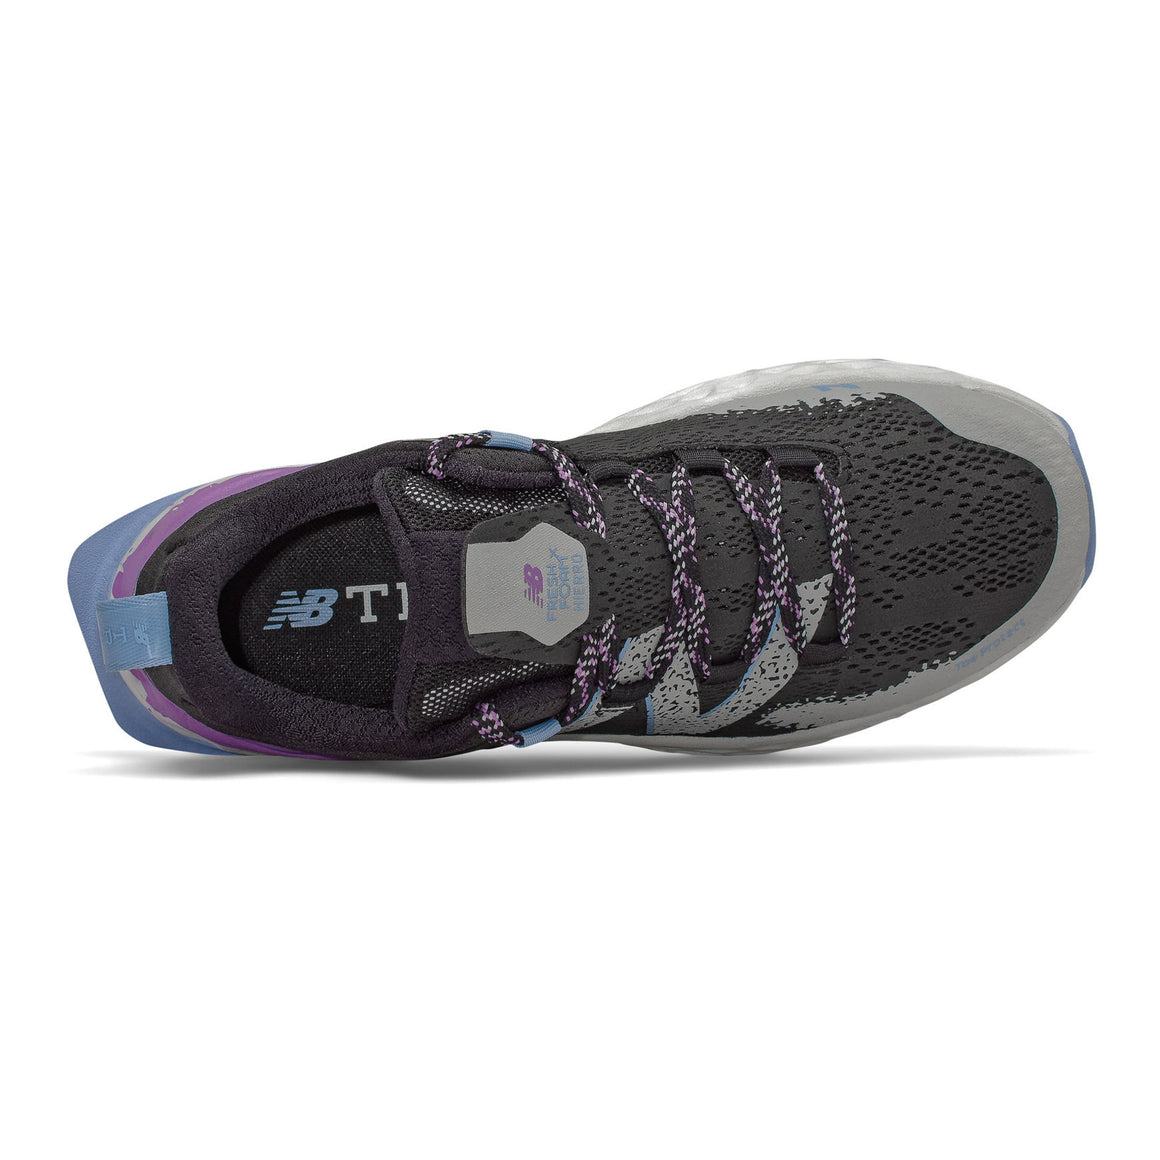 Hierro Trail Running Shoes for Women in Black